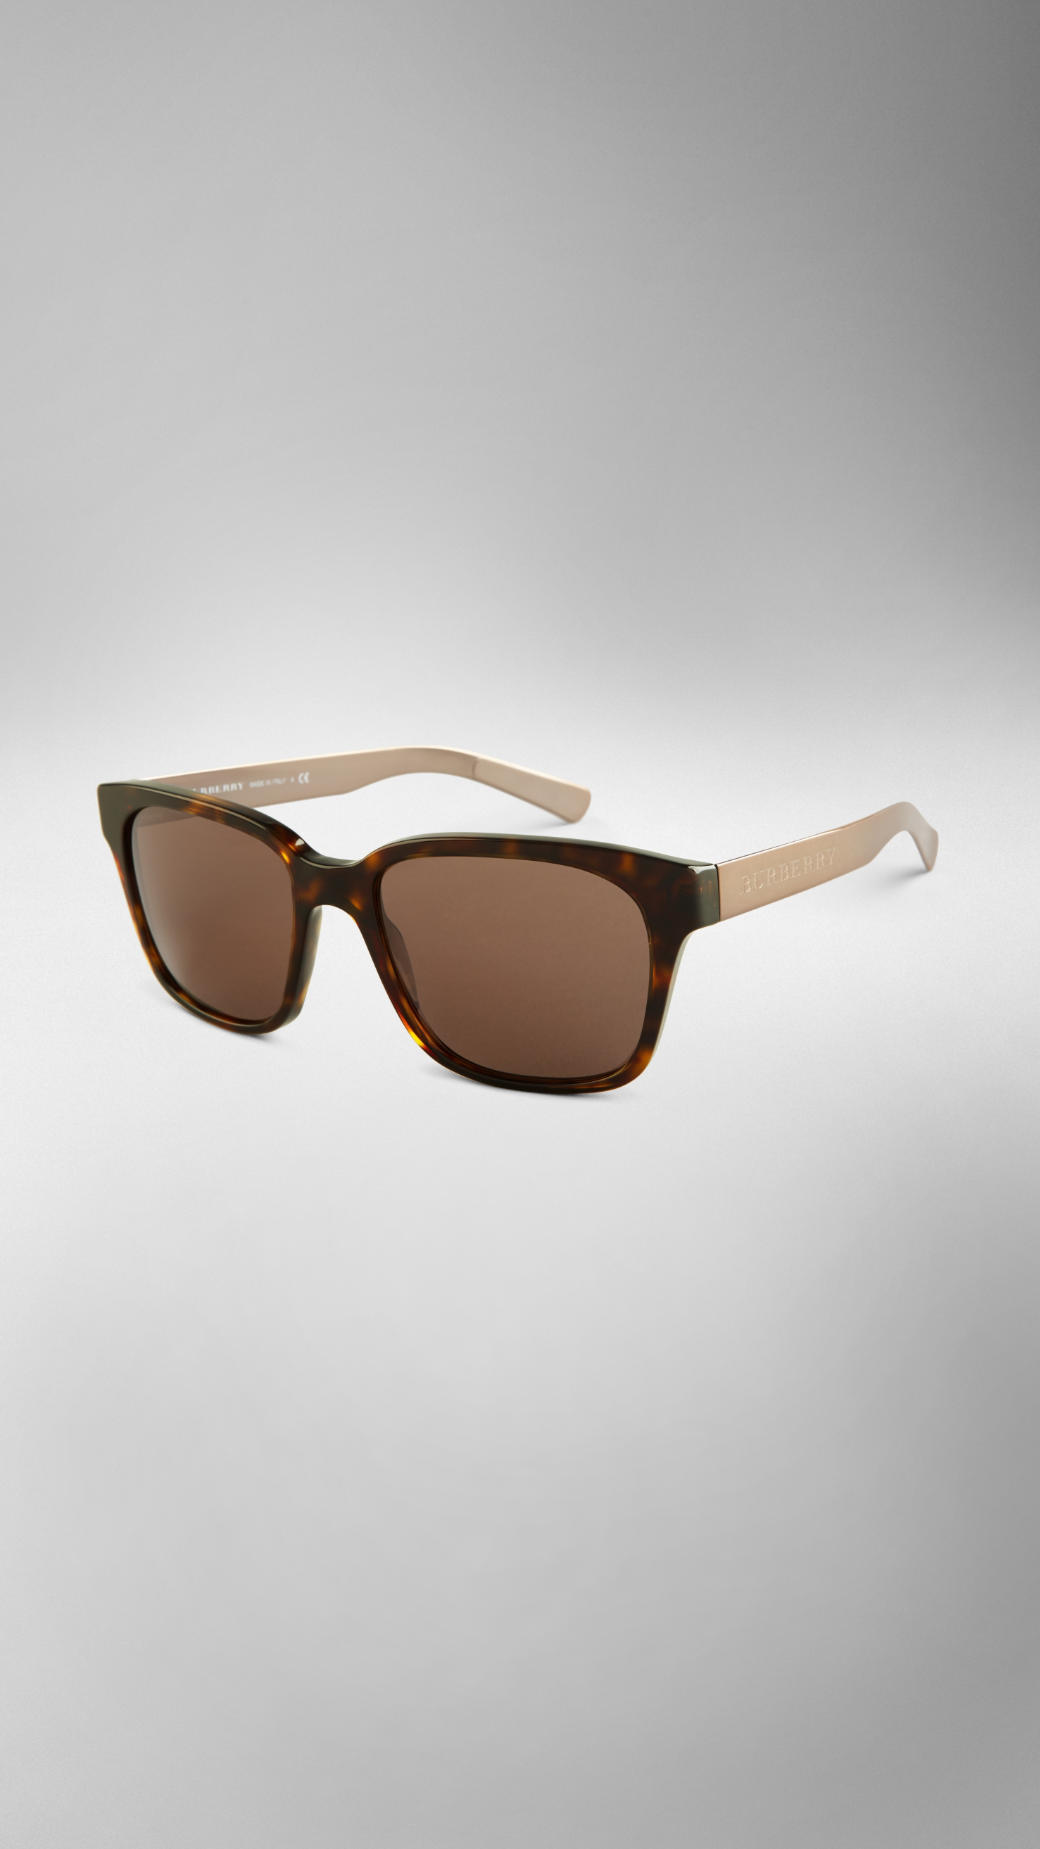 dda3c52120f0 Lyst - Burberry Brit Brit Rhythm Square Sunglasses in Brown for Men